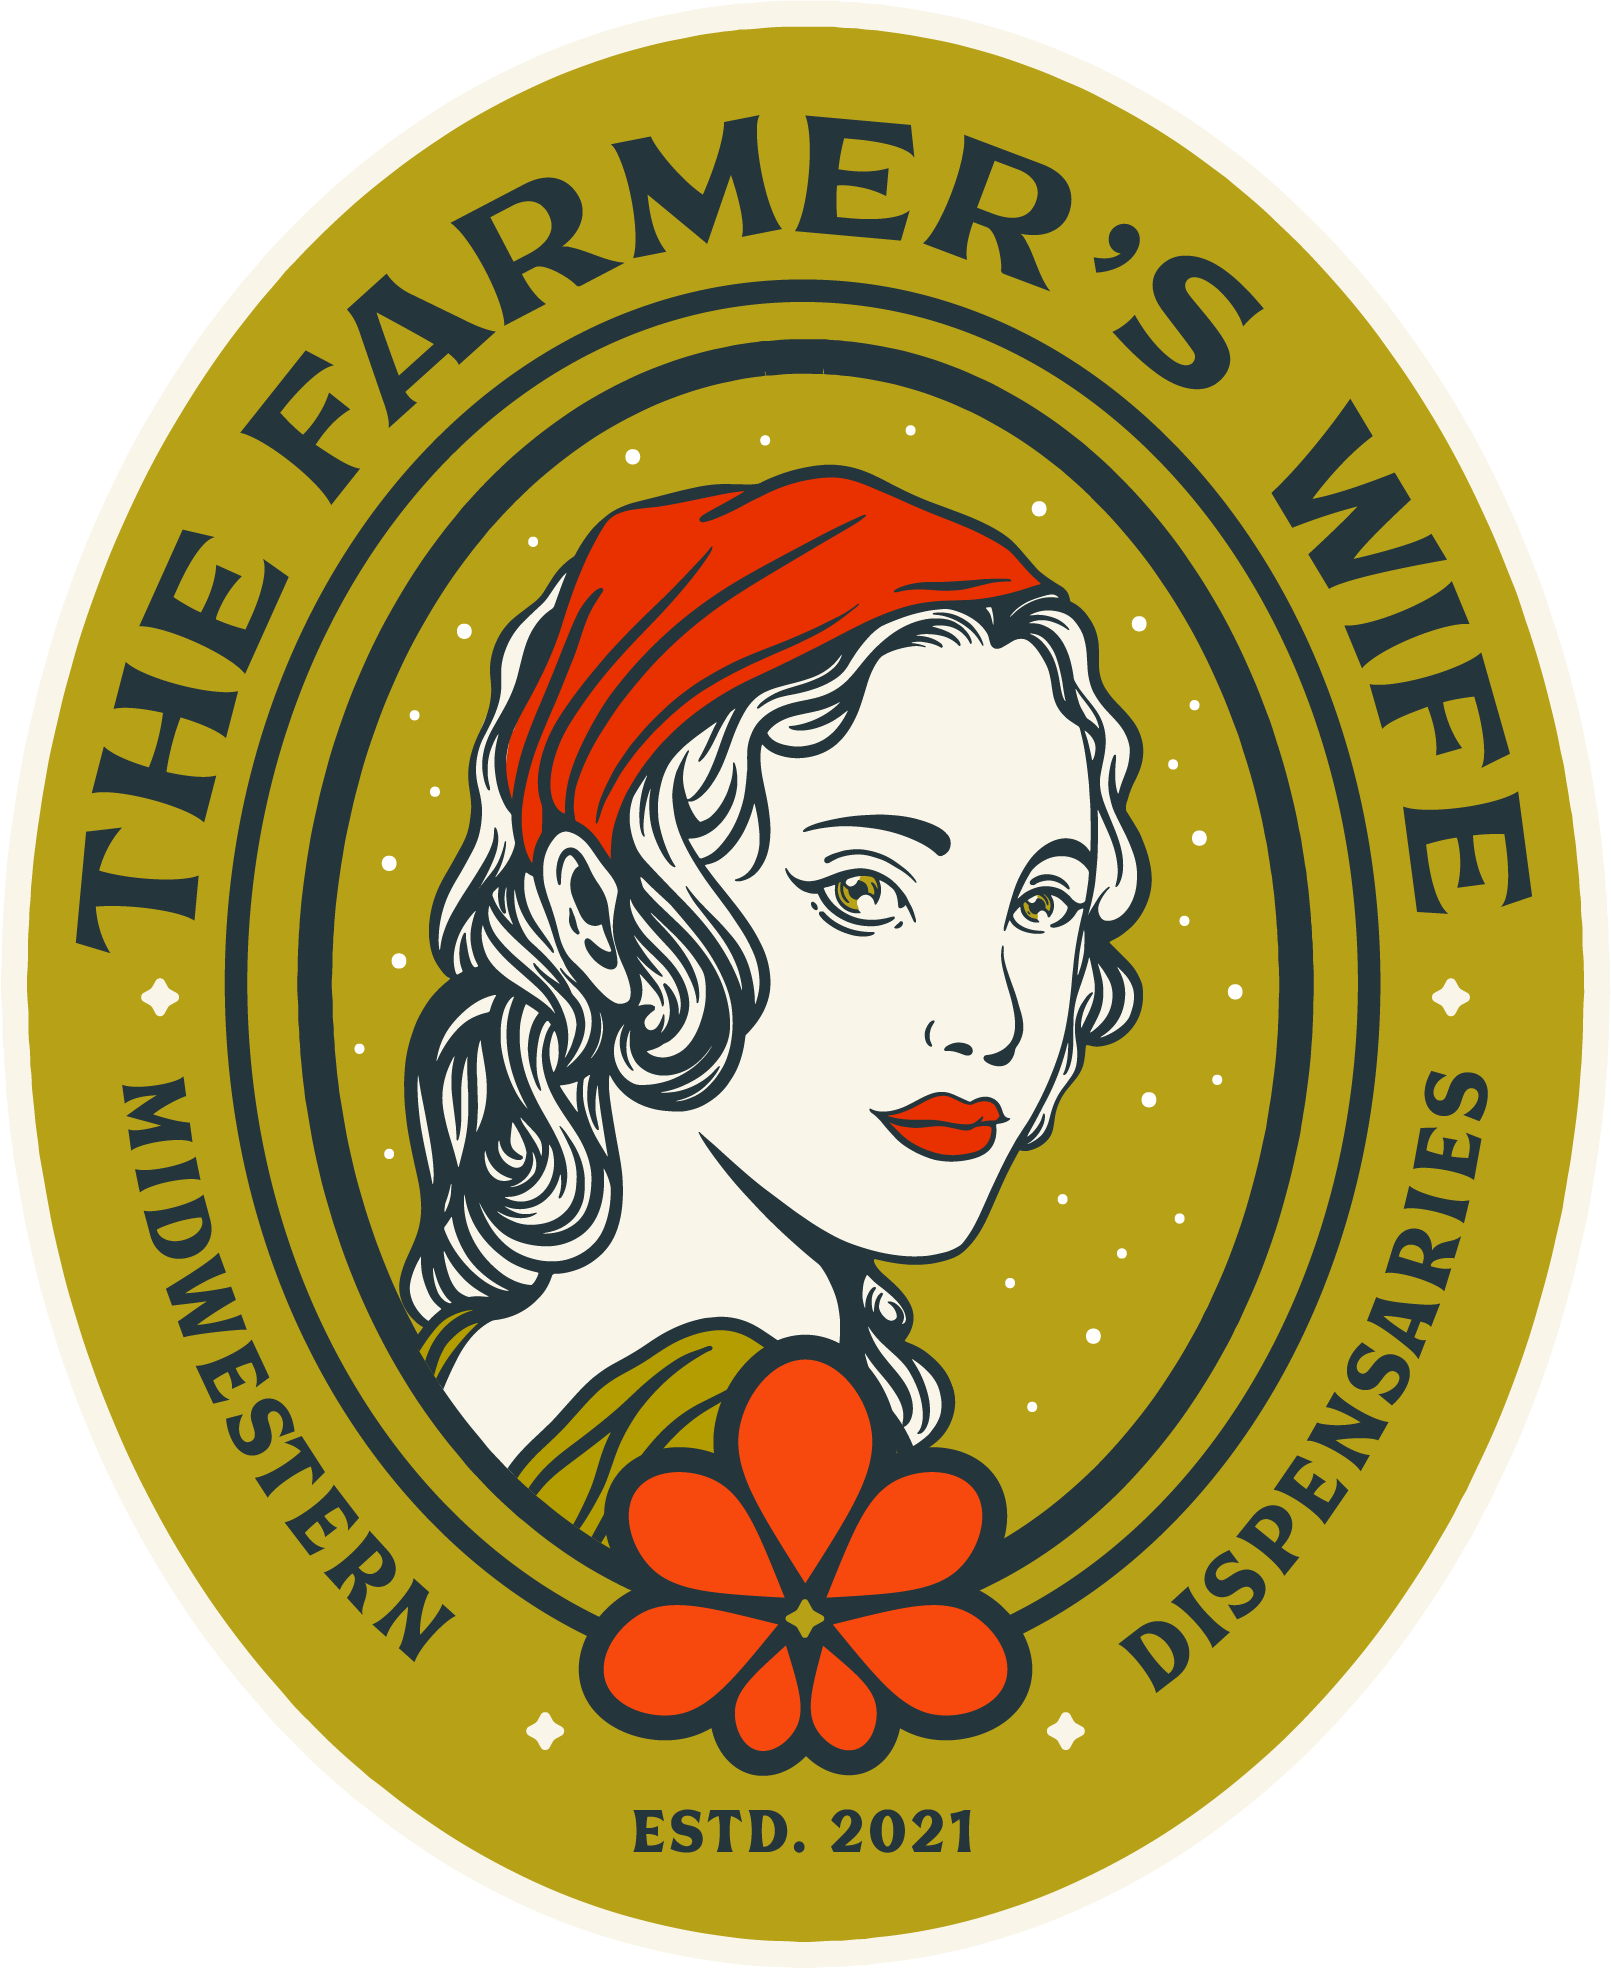 The Farmer's Wife Midwestern Dispensaries